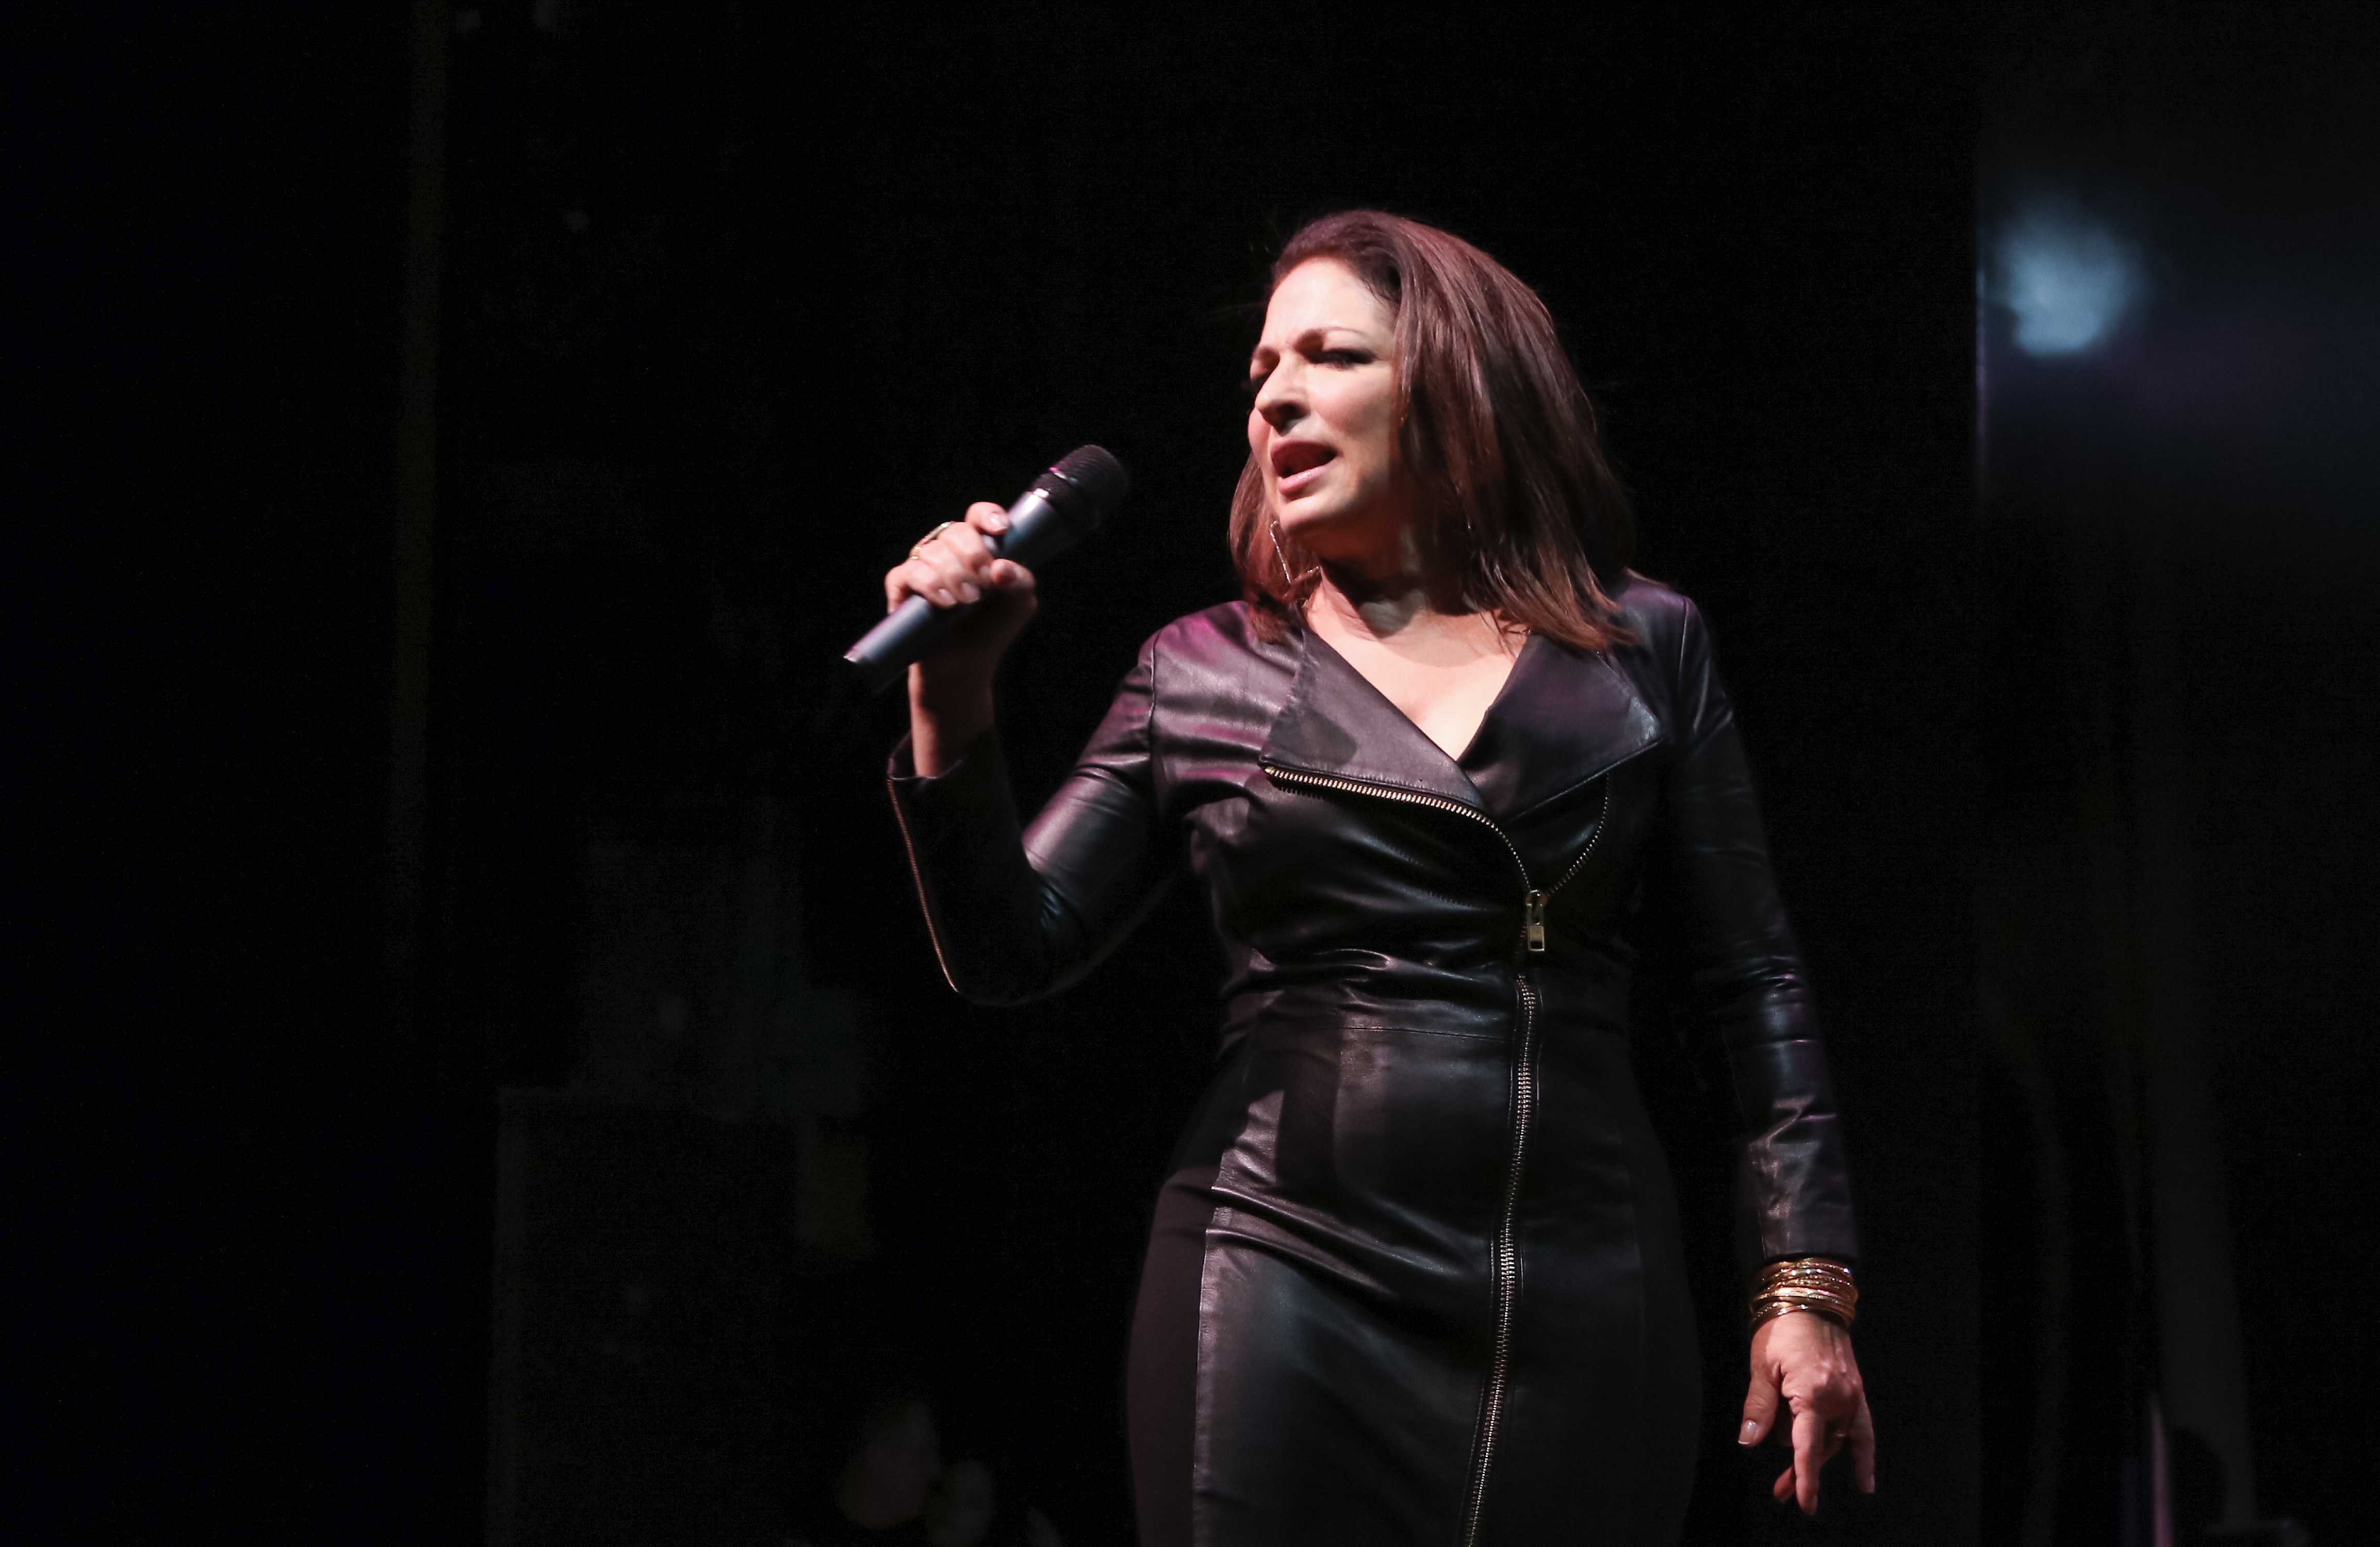 Gloria Estefan And Miami Sound Machine A Benefit Concert for Viva Broadway at Minskoff Theatre on September 14, 2015 in New York City.